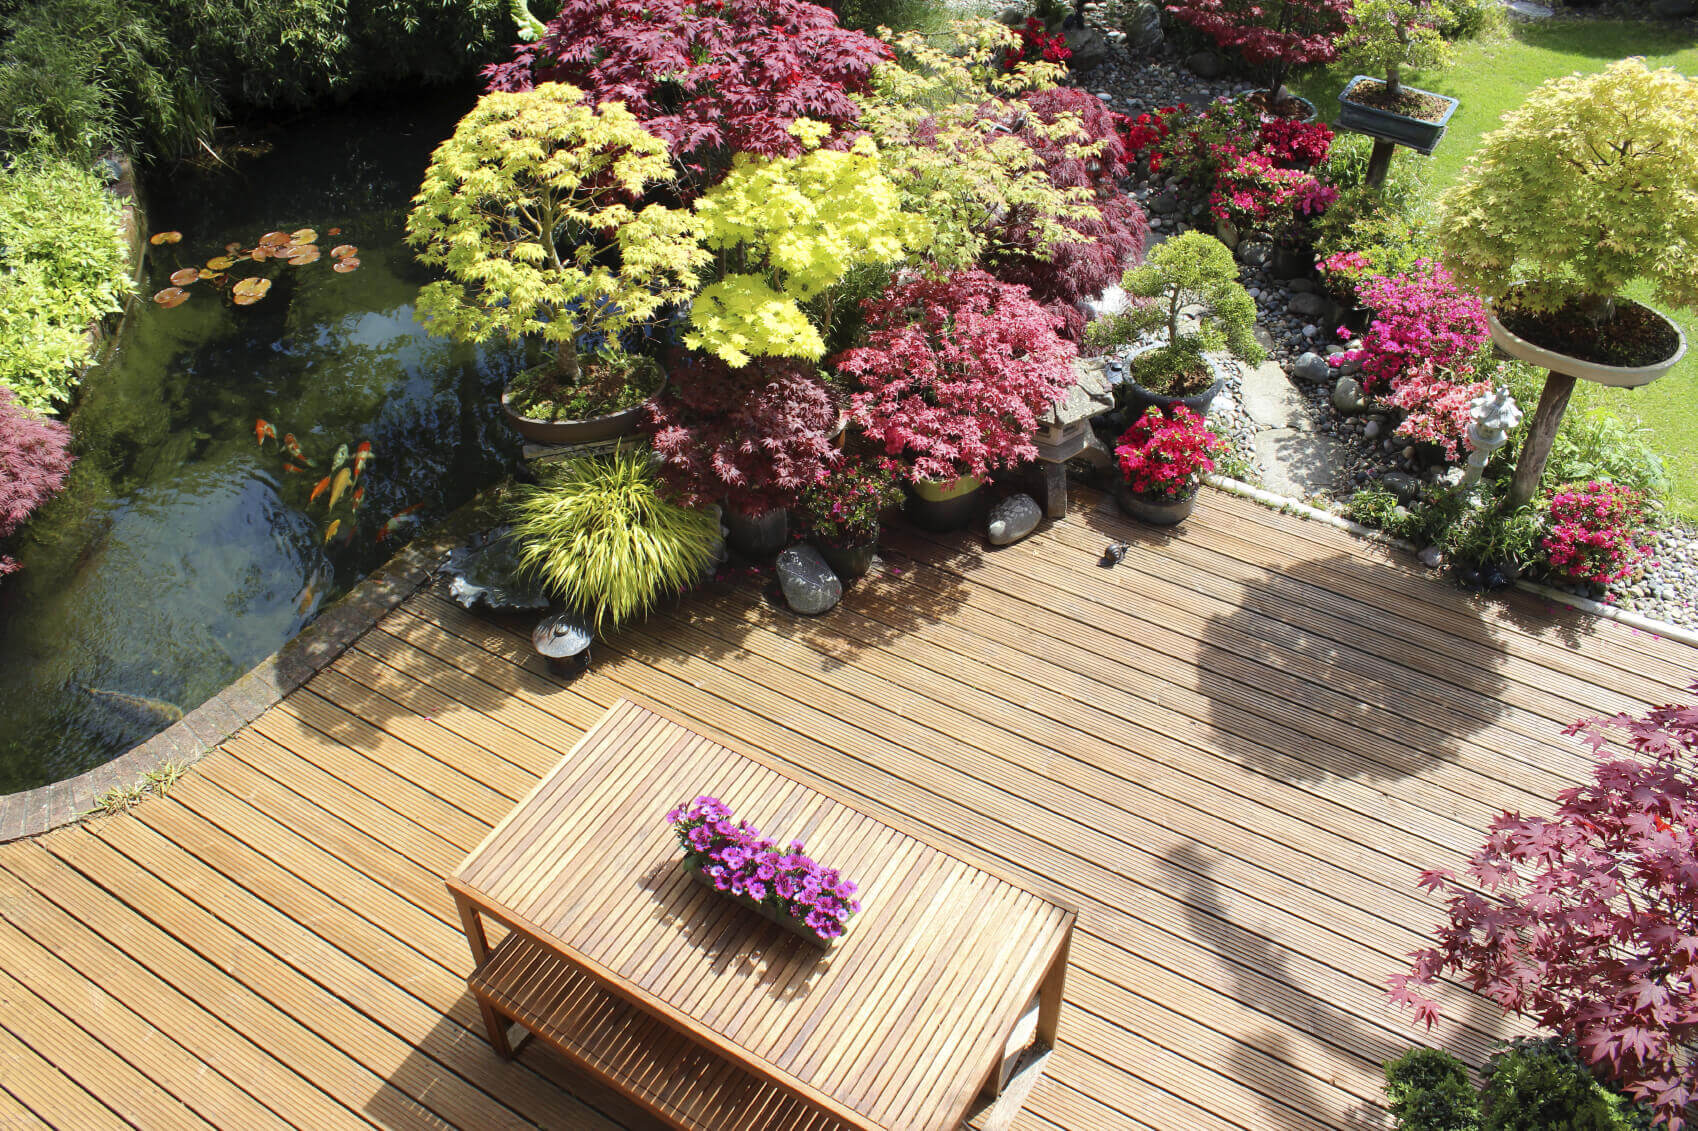 If your garden is small enough it can work as a centerpiece for an outdoor table. A satellite garden like this can even match your larger gardens and work to tie your entire design together.